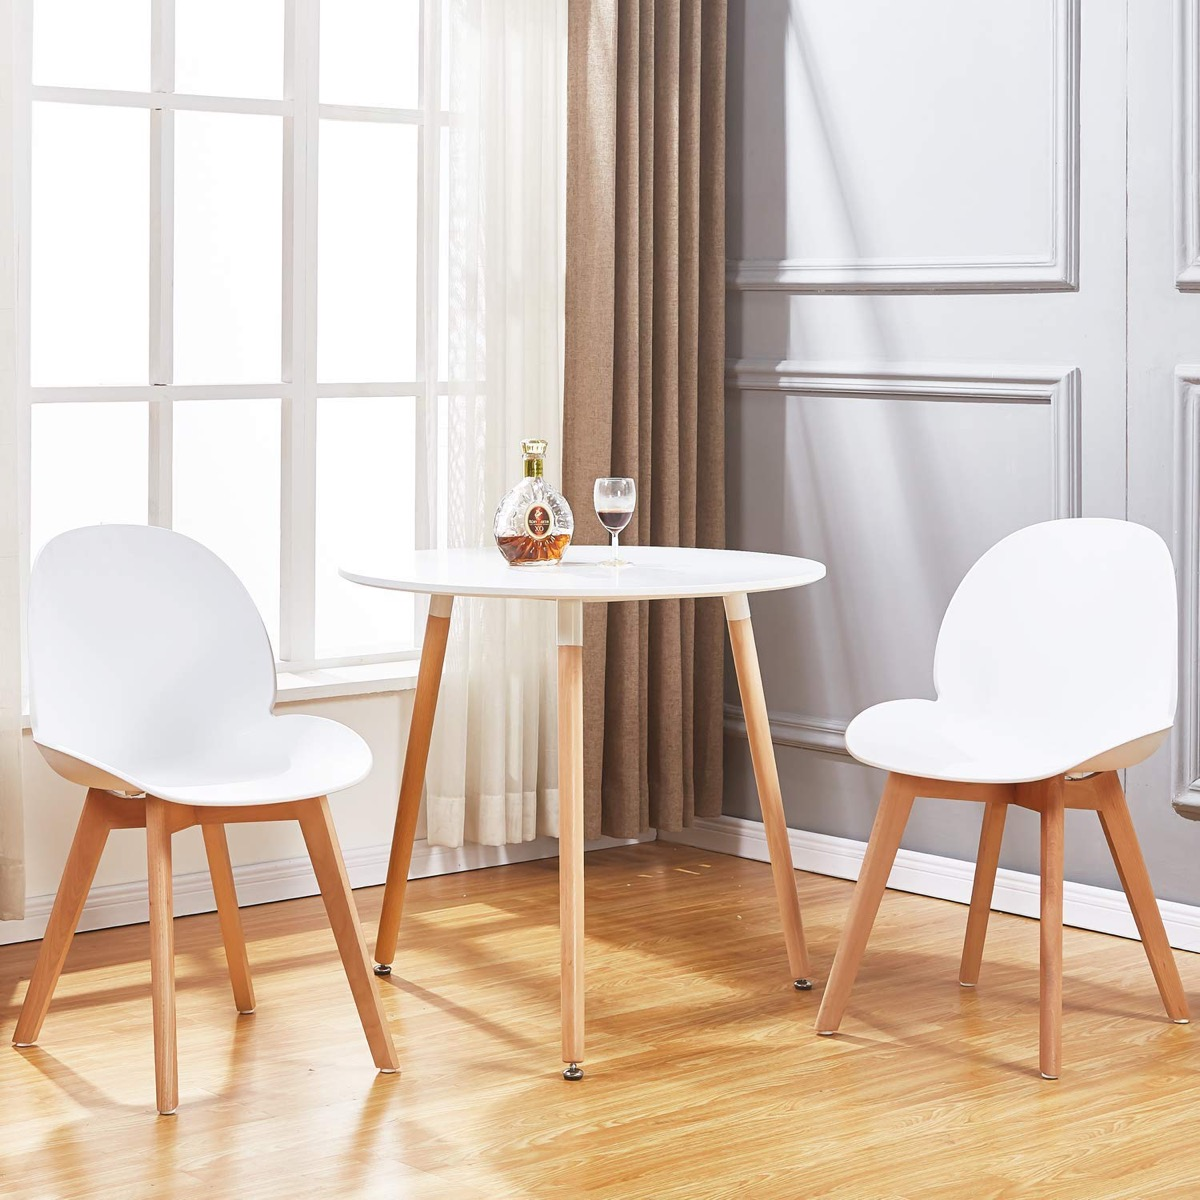 Small-Round-Dining-Table-For-2-With-White-Glossy-Top-And-Wood-Legs